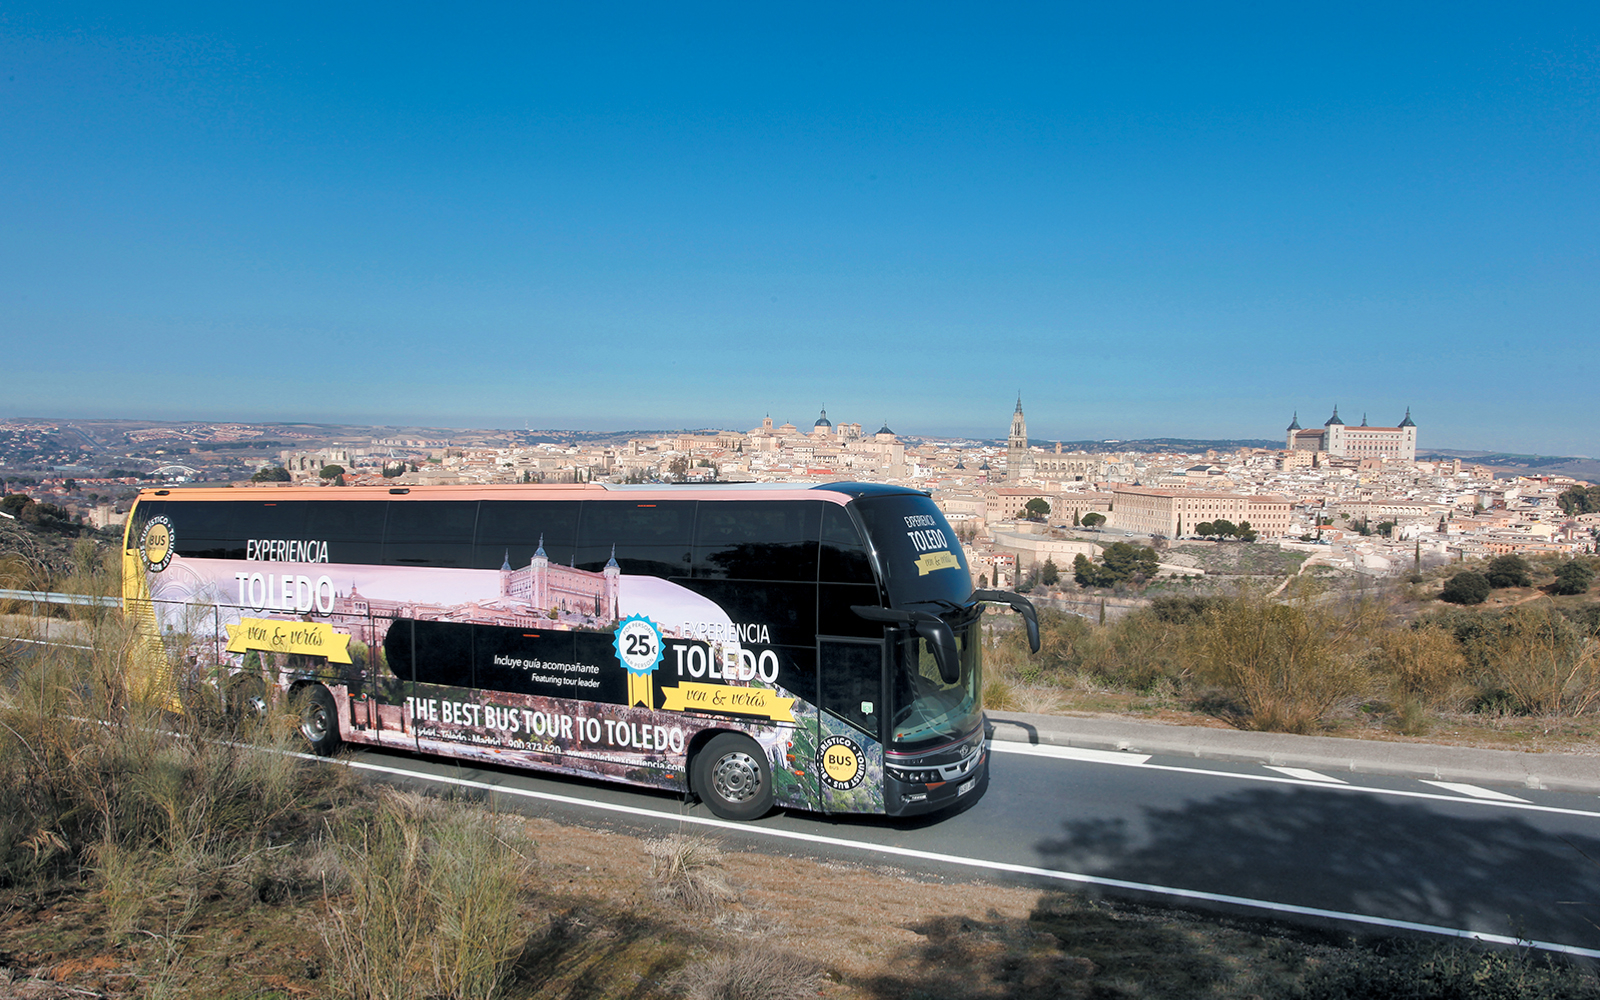 Ee58d6d3 45cc 4d7f b9a6 5ac2cd02ca3b 9401 madrid all inclusive day trip to toledo 02